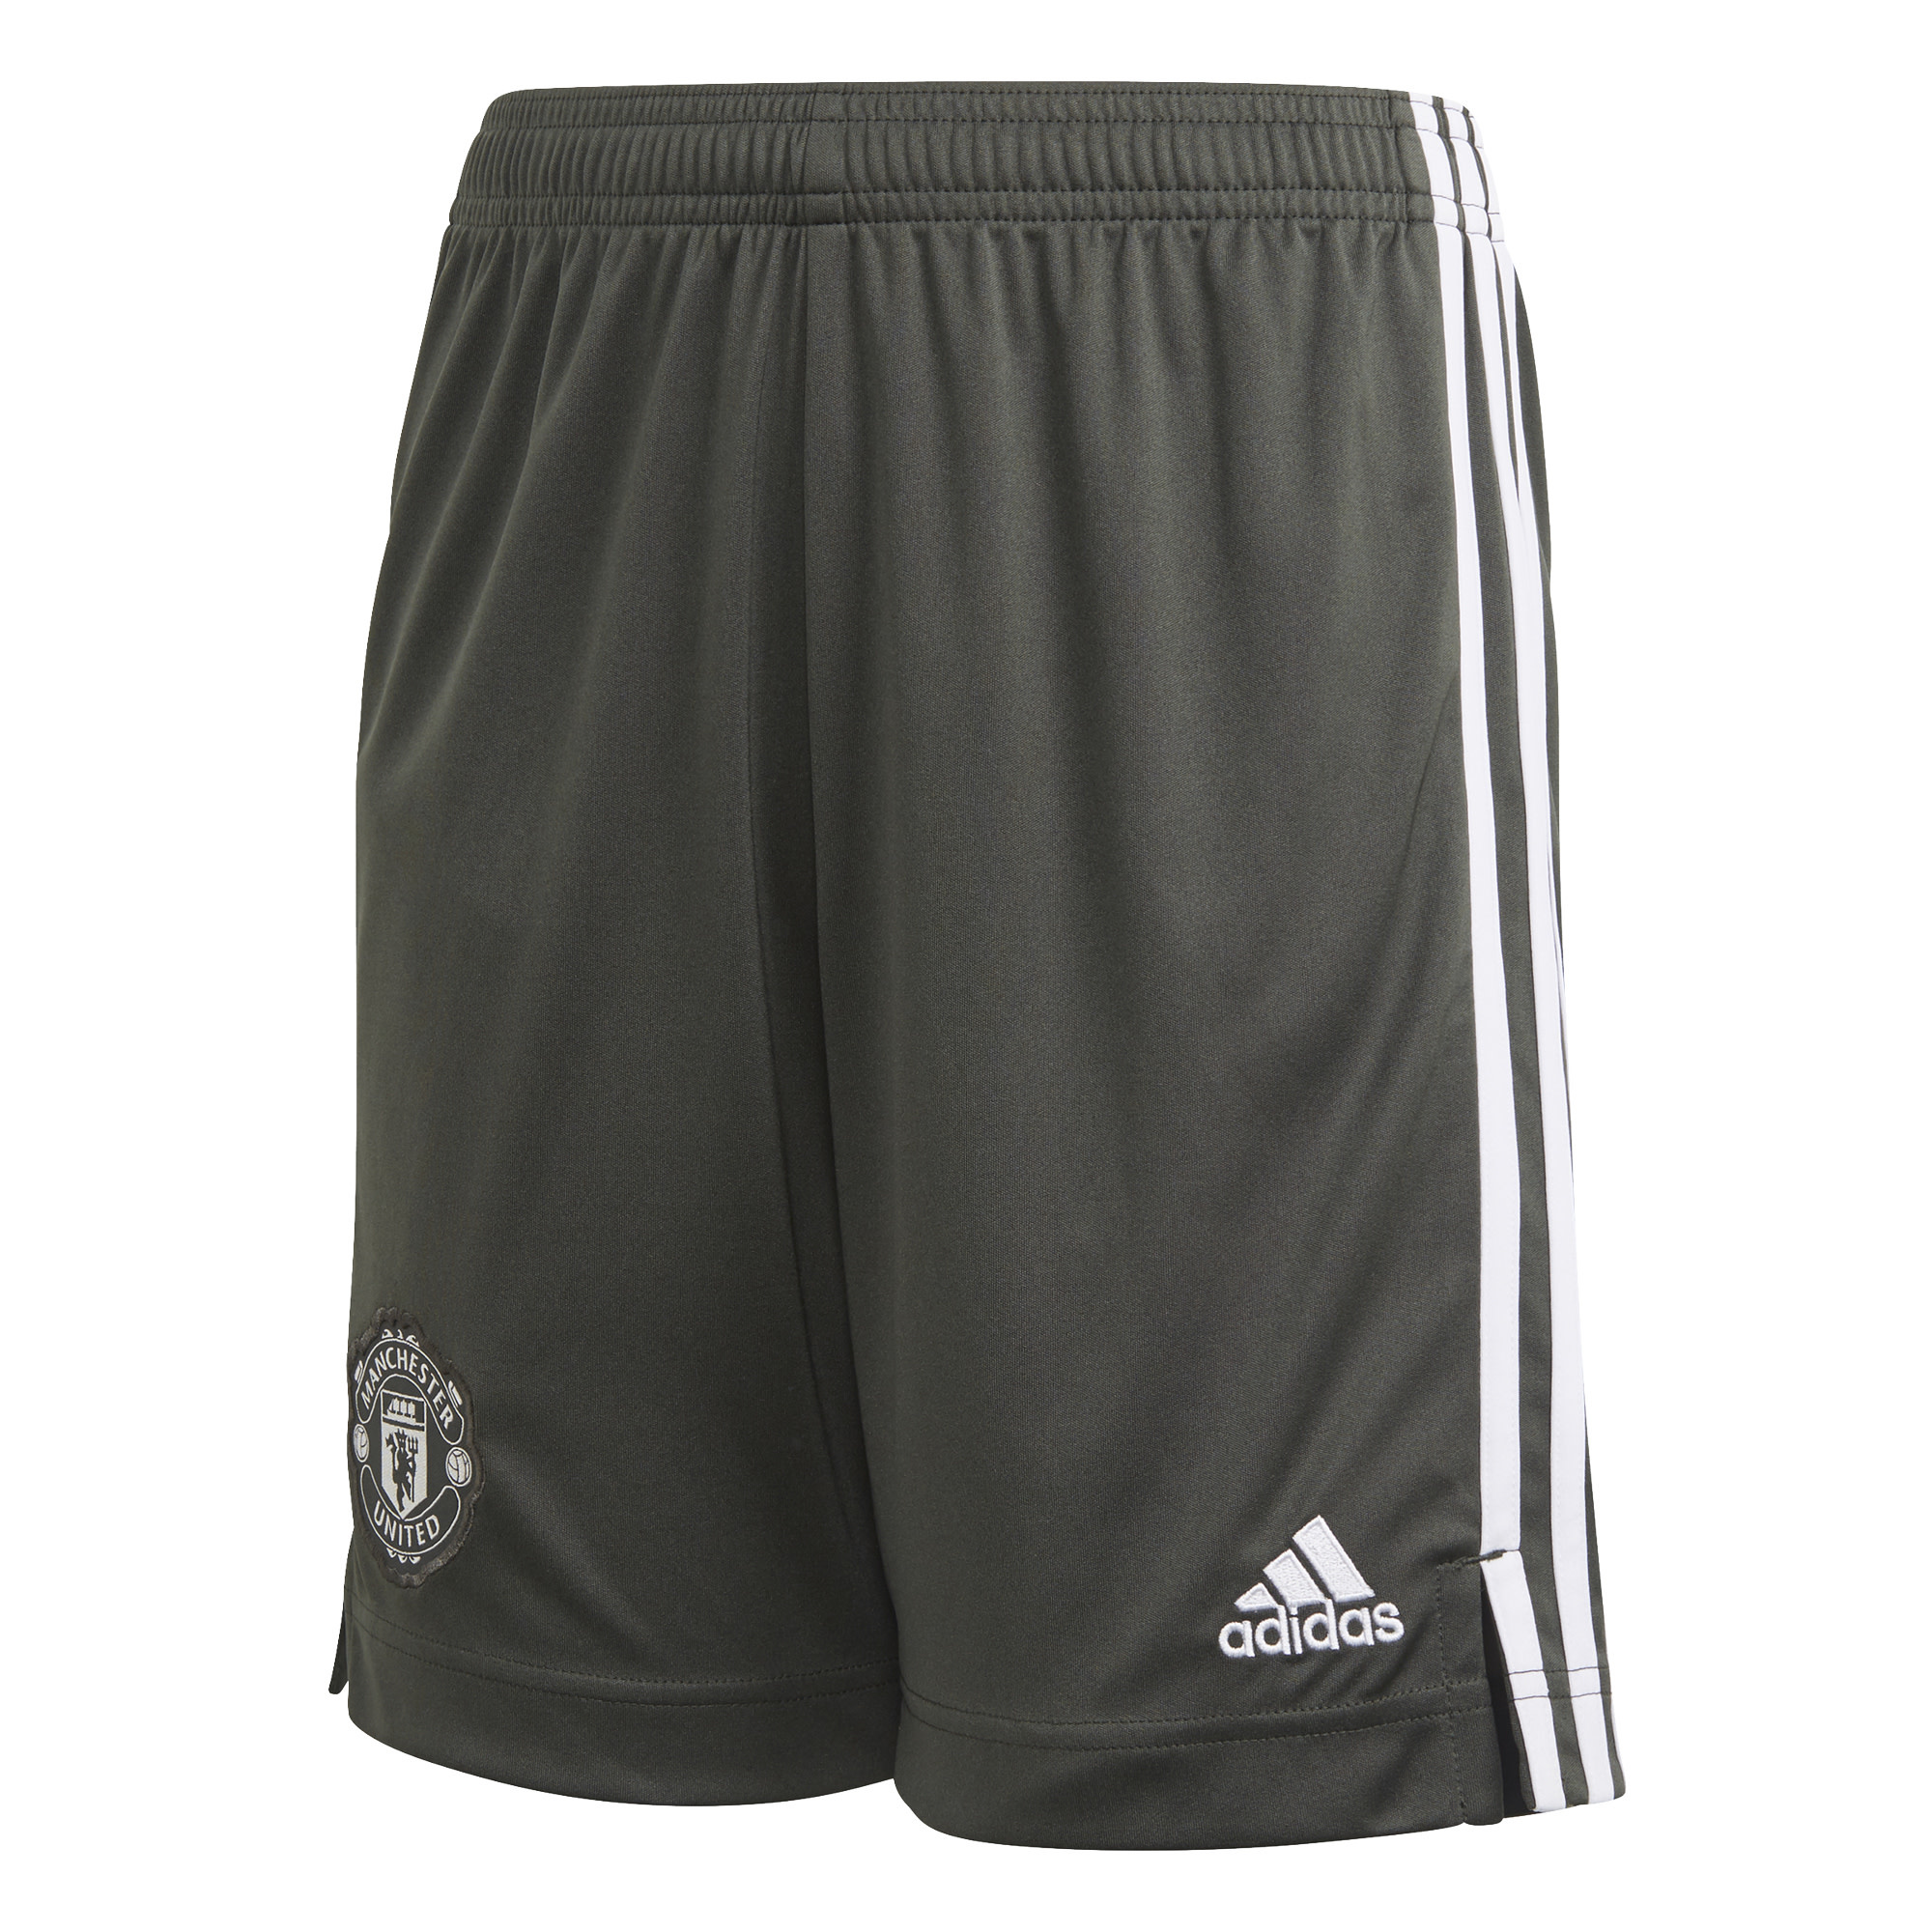 Adidas ADIDAS Manchester United Away Short '20-'21